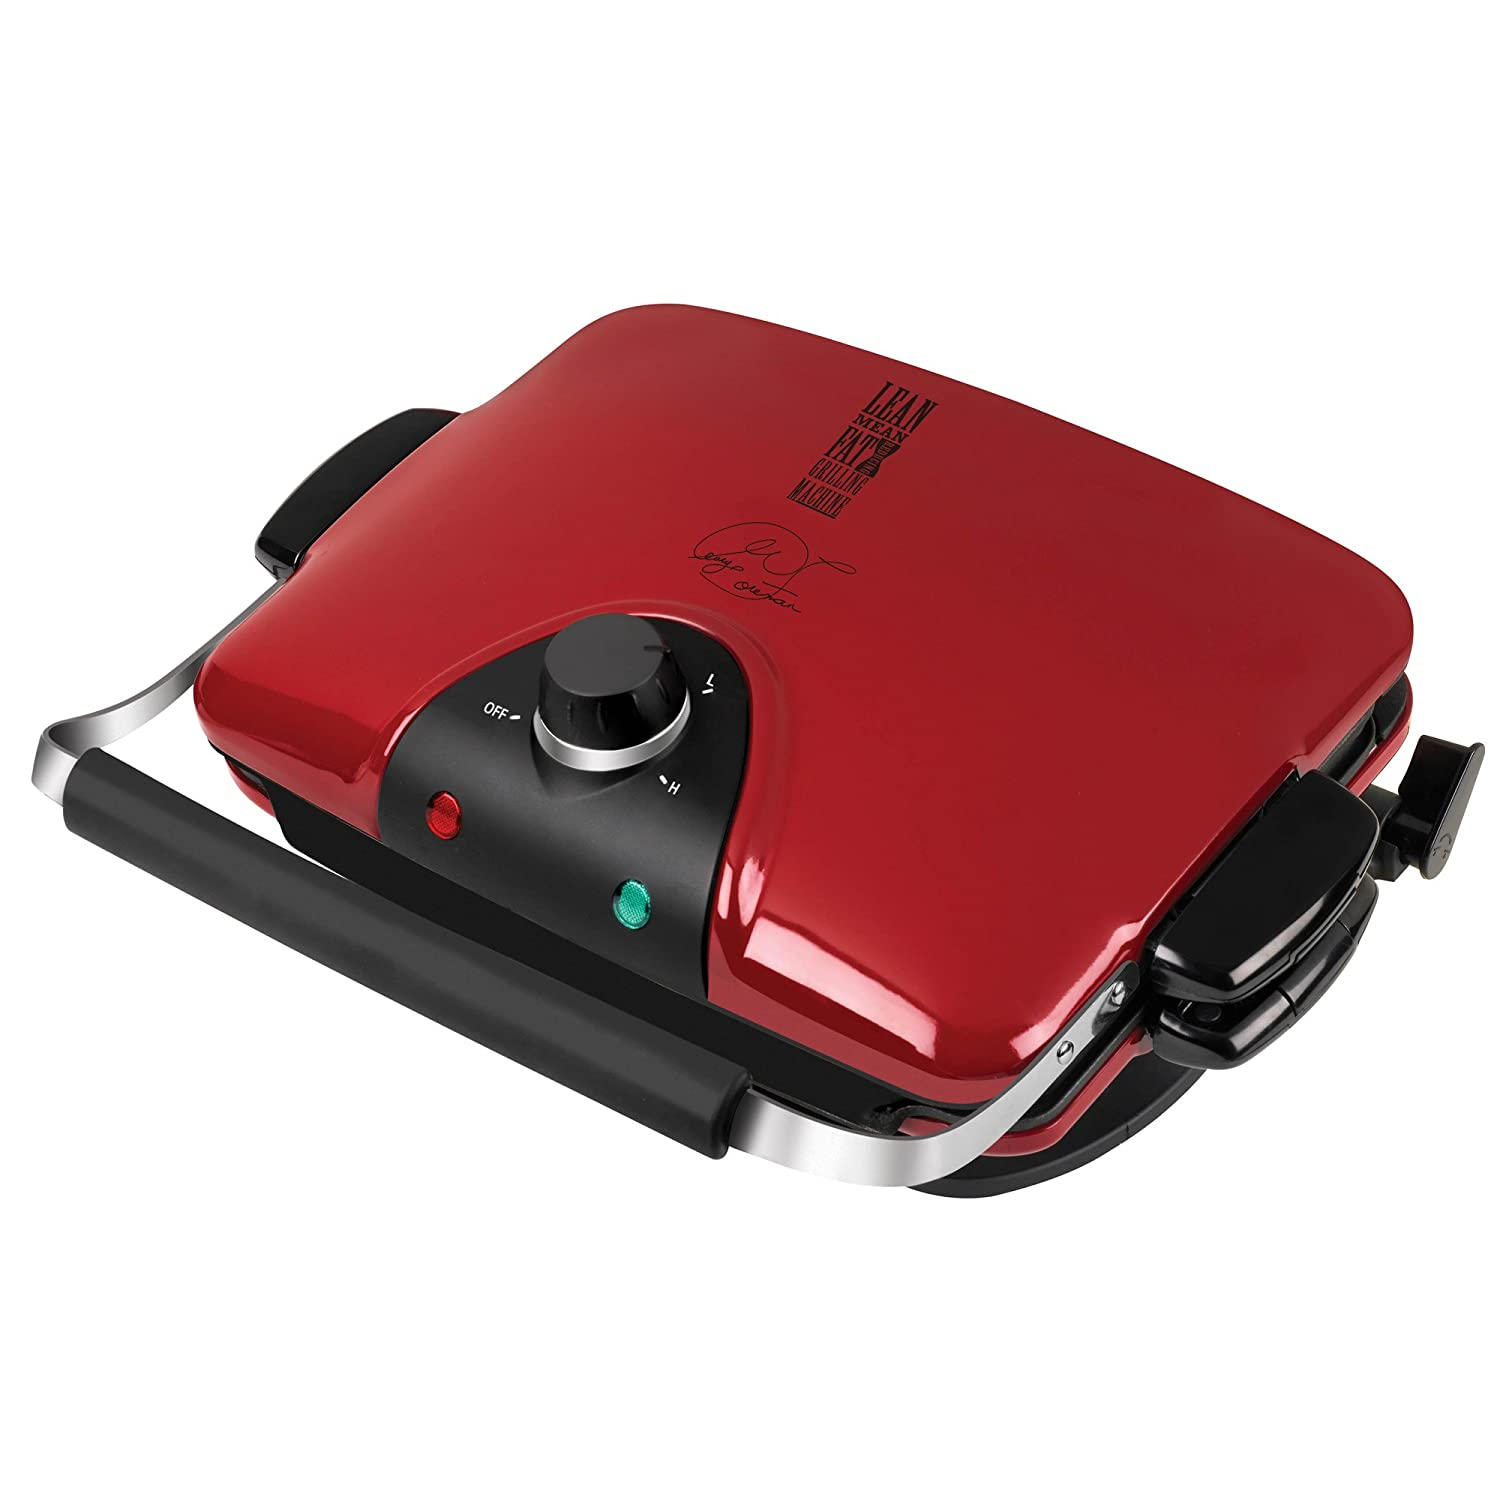 George Foreman GRP90WGR Next Grilleration Electric Nonstick Grill with 5 Removable Plates, Red Spectrum Brands GRP90WGRFF